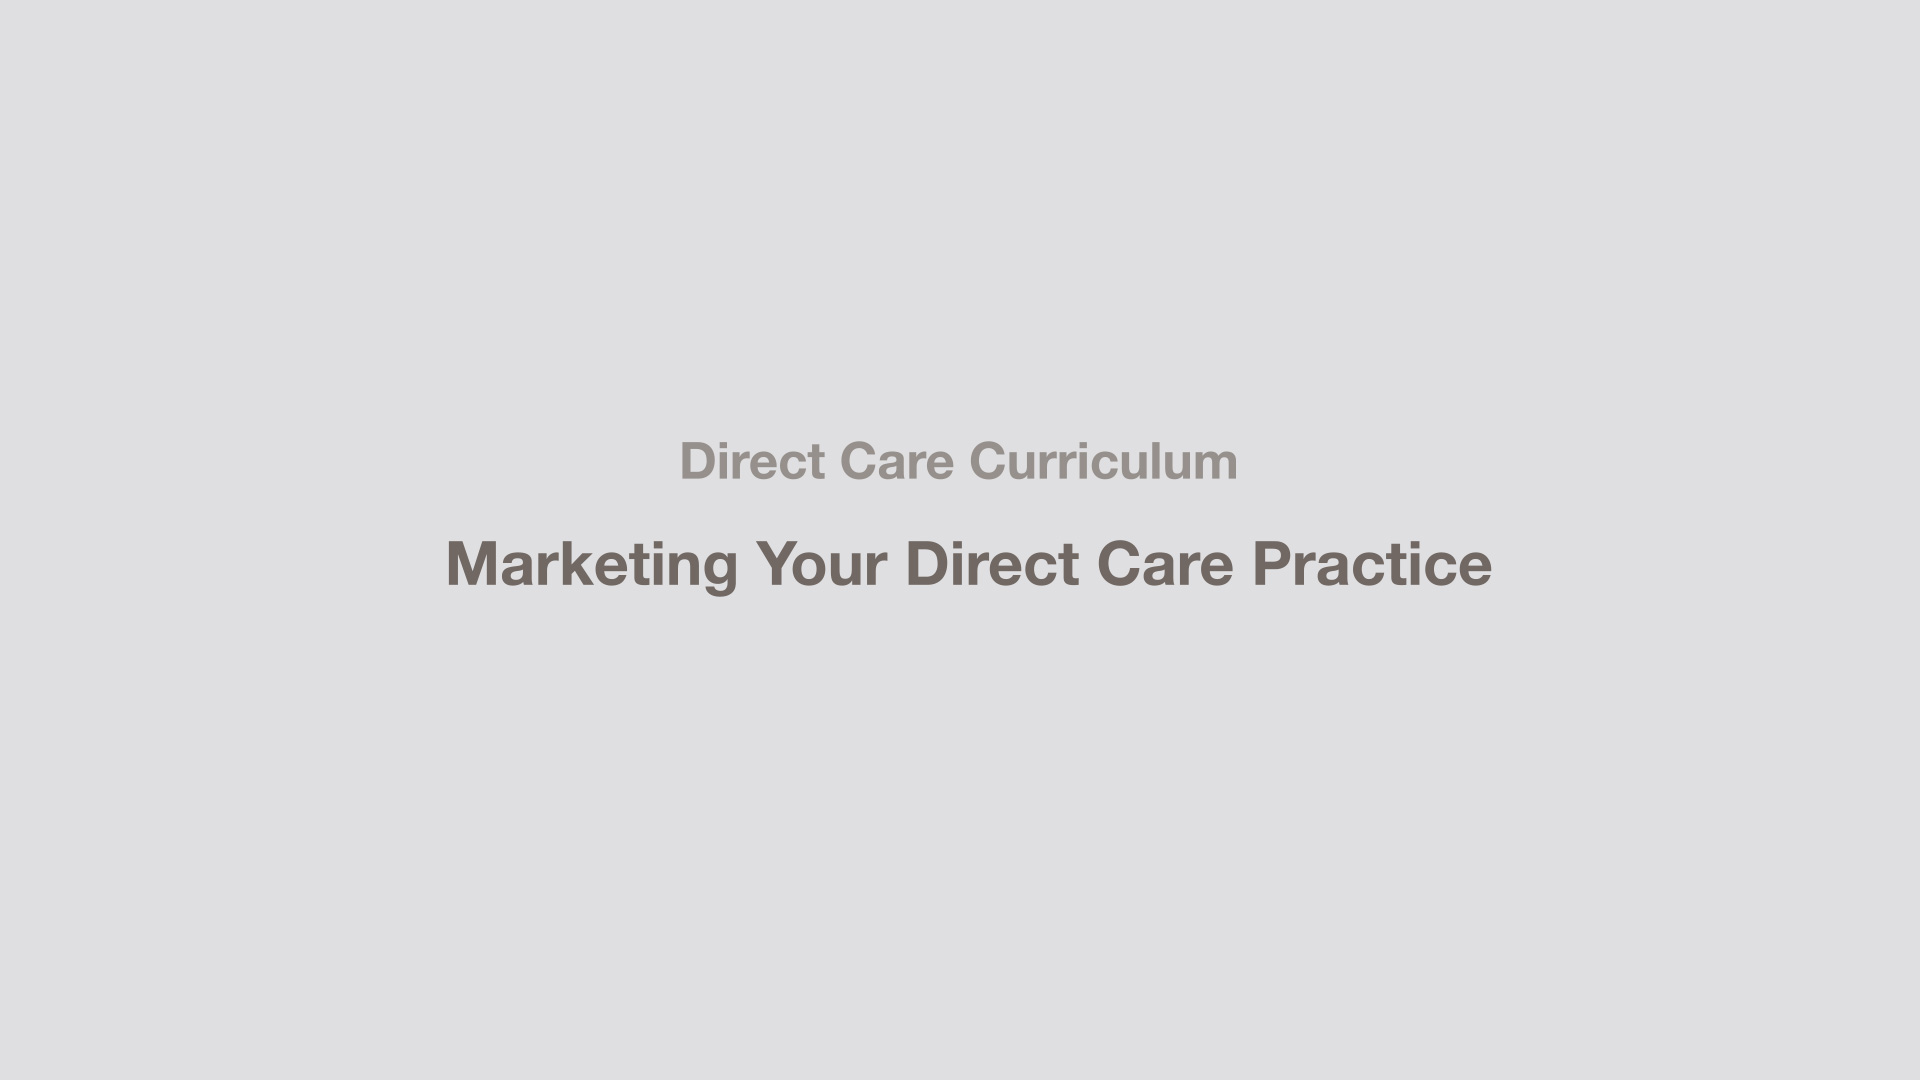 Marketing Your Direct Care Practice